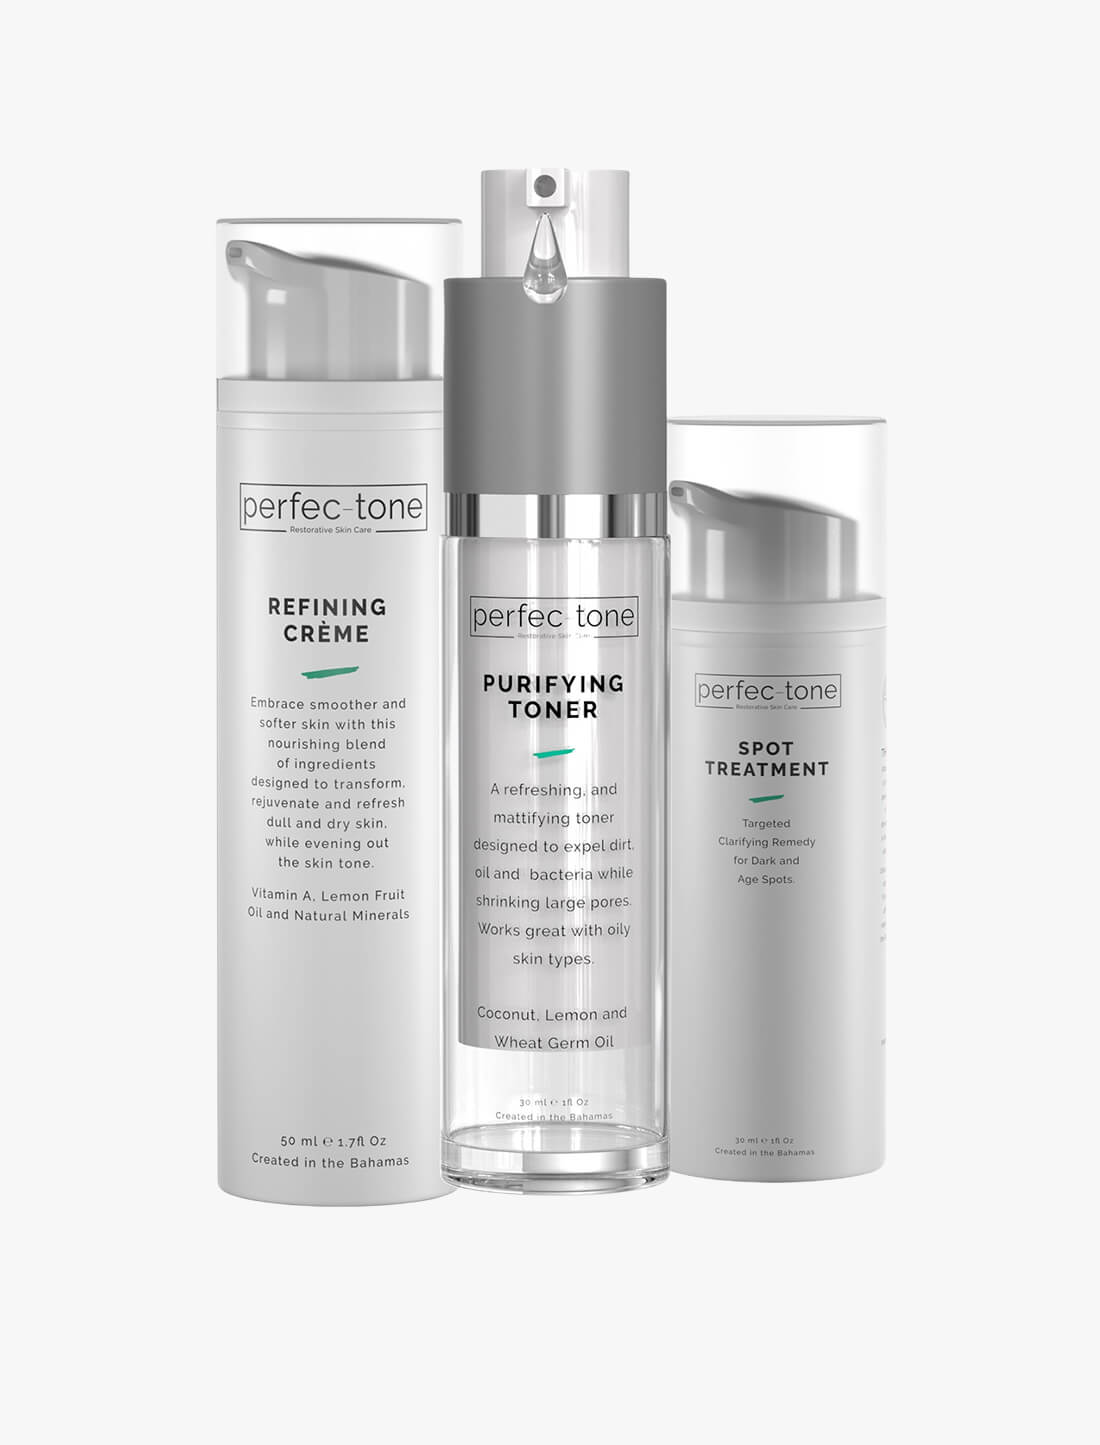 Complexion Perfection Set - Purifying Toner, Refining Crème, & Spot Treatment